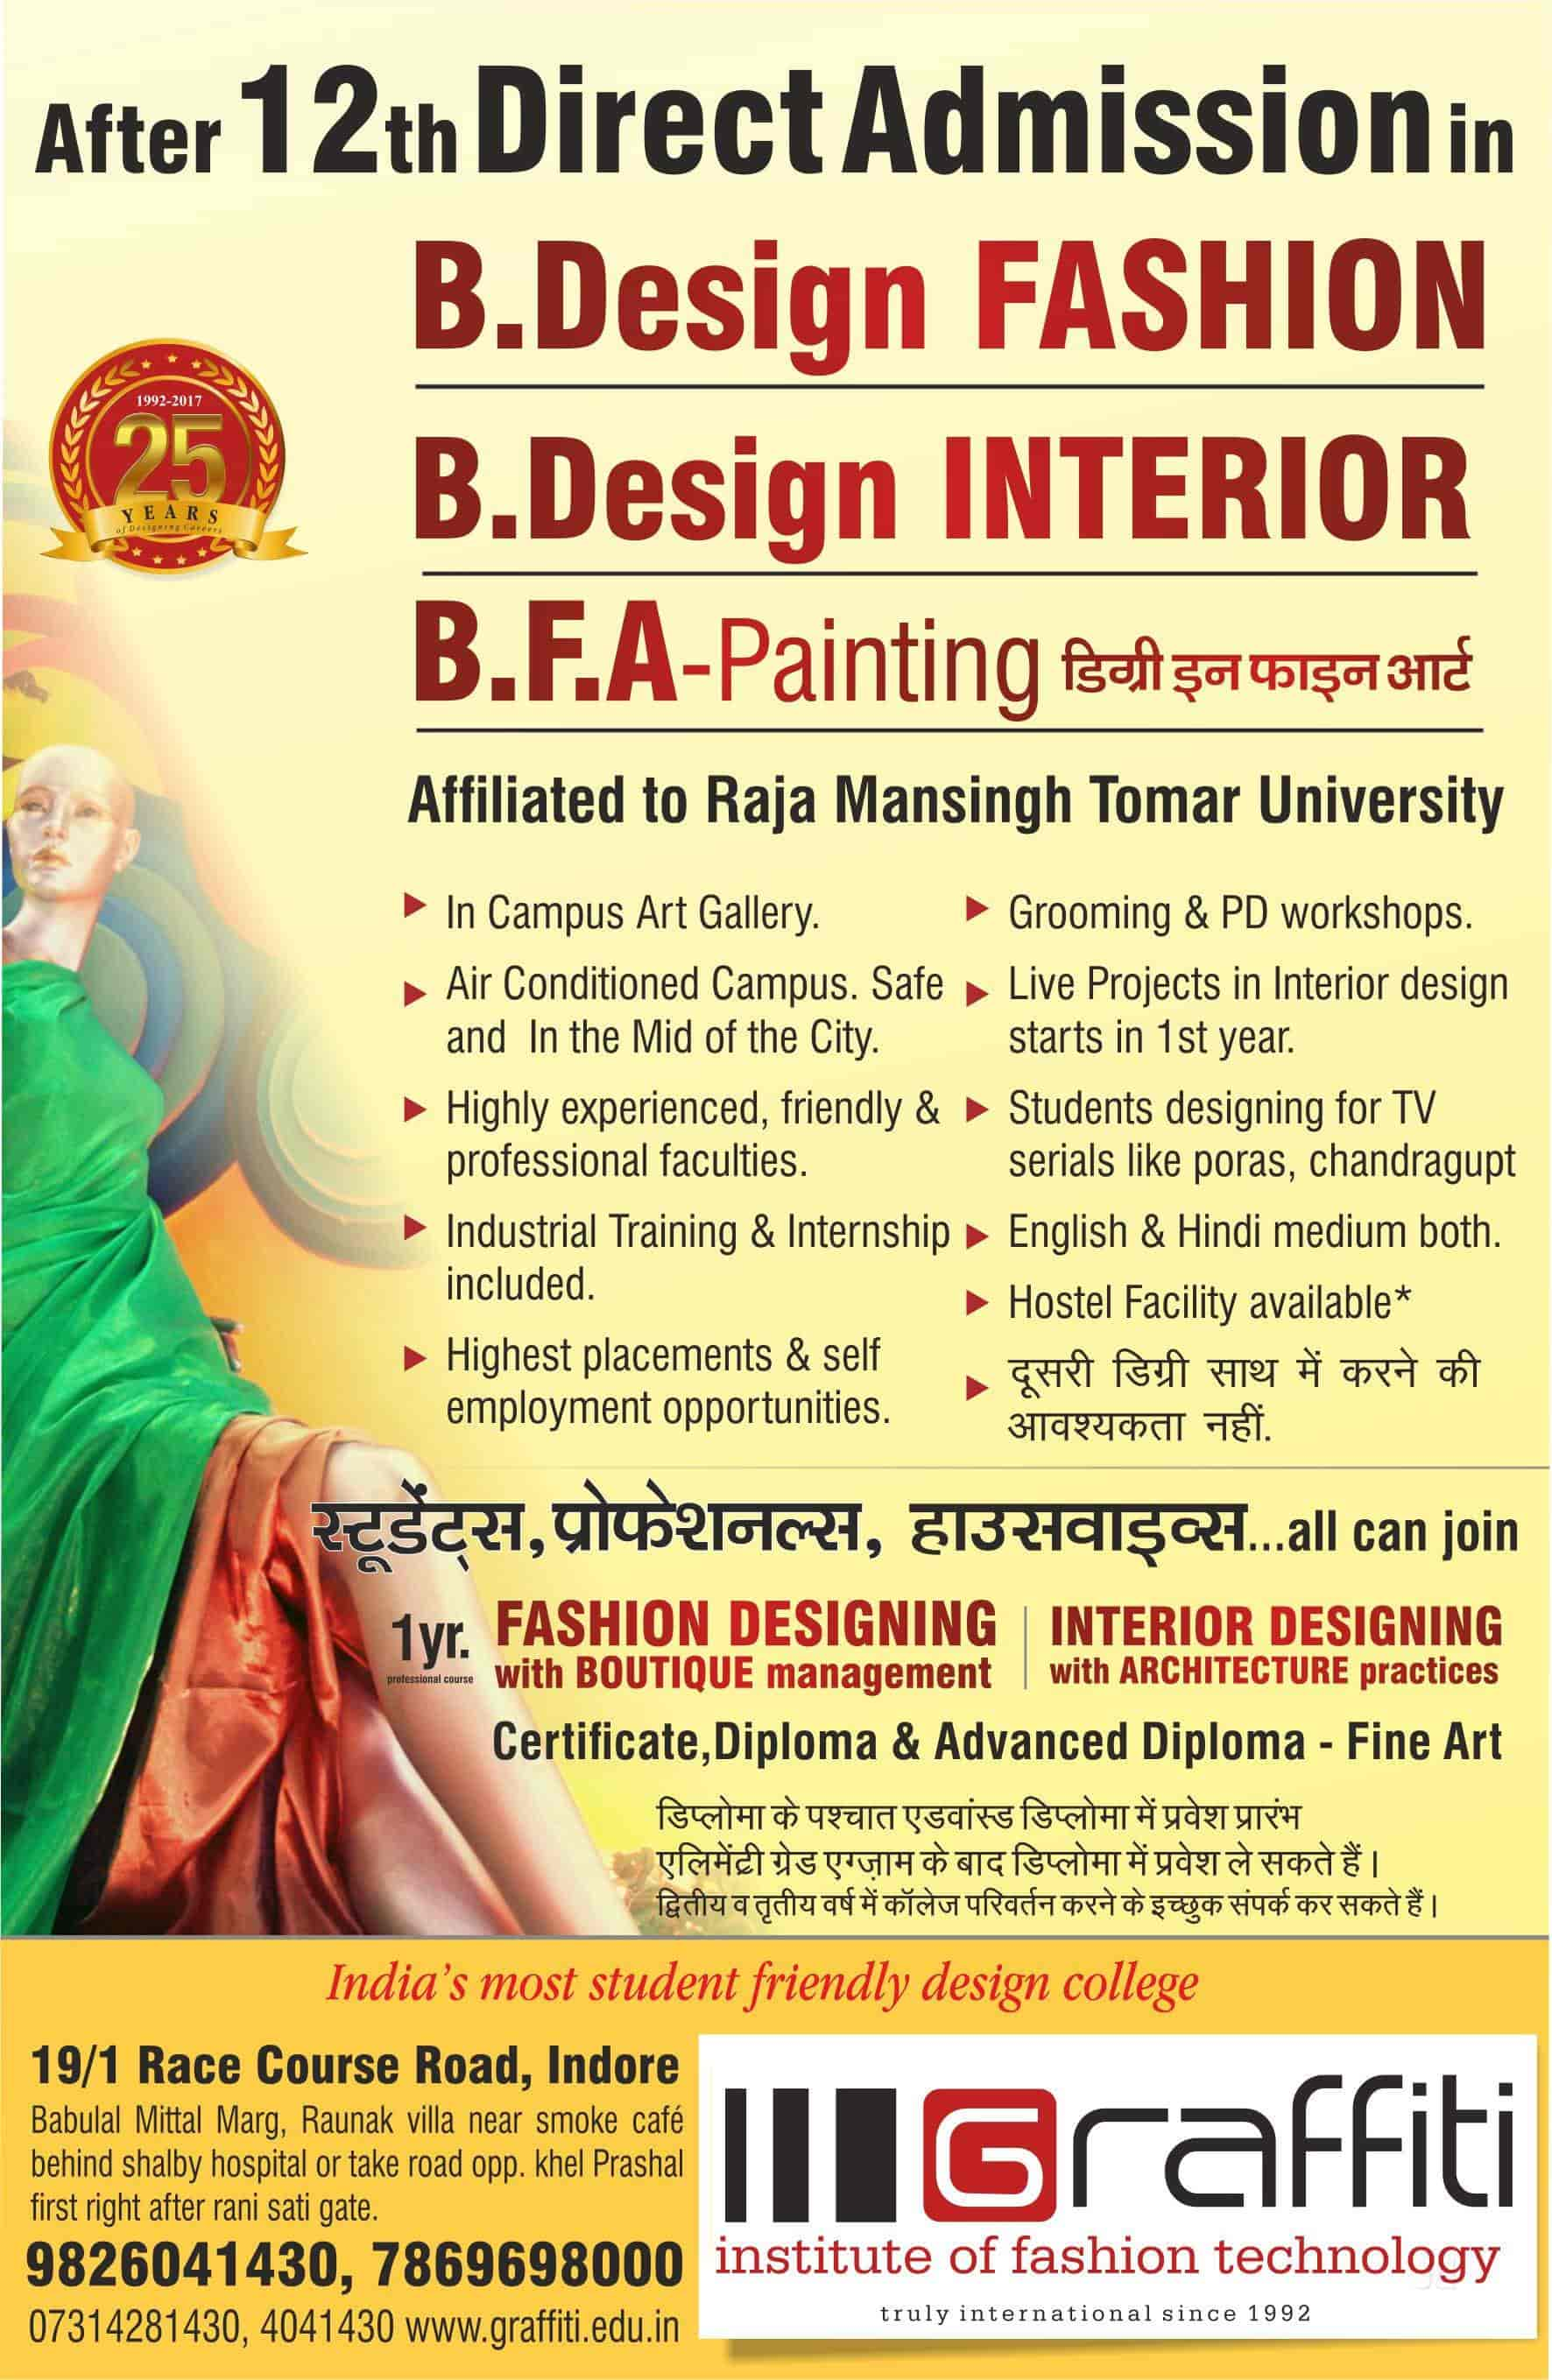 Graffiti Institute Of Fashion Technology Reviews Yn Road Indore 56 Ratings Justdial